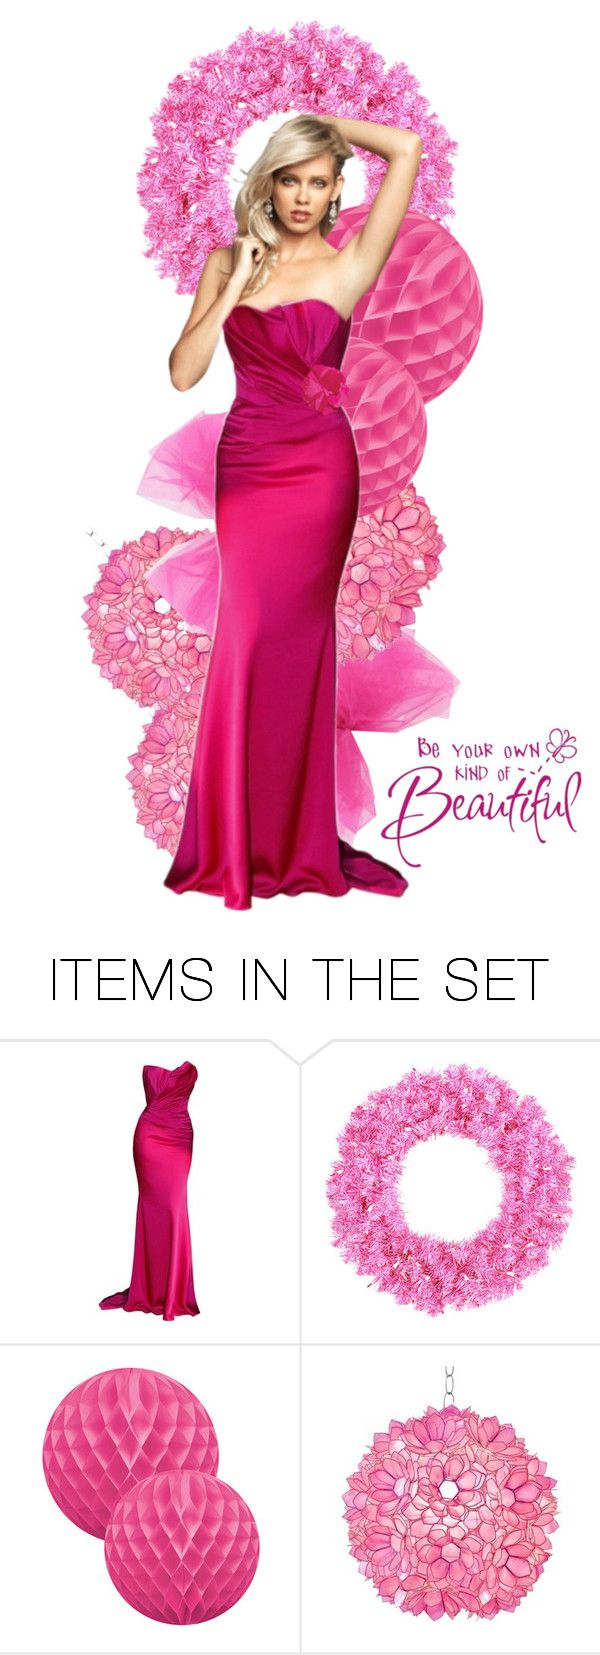 """""""Be your own kind of Beautiful"""" by glitterlady4 ❤ liked on Polyvore featuring art"""